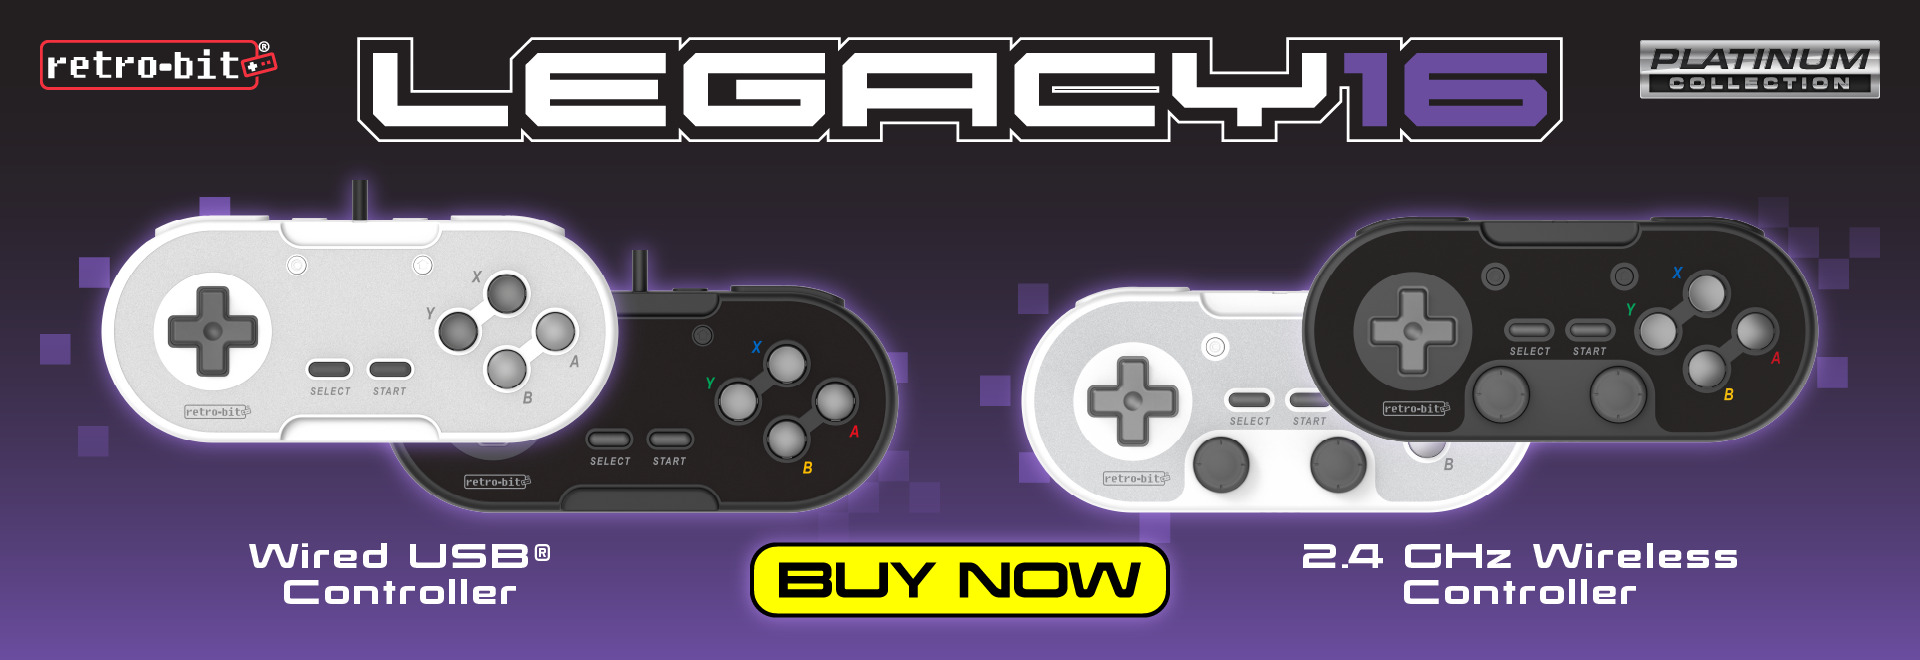 Legacy16 Wired USB and 2.4 GHz Wireless Controllers are here!